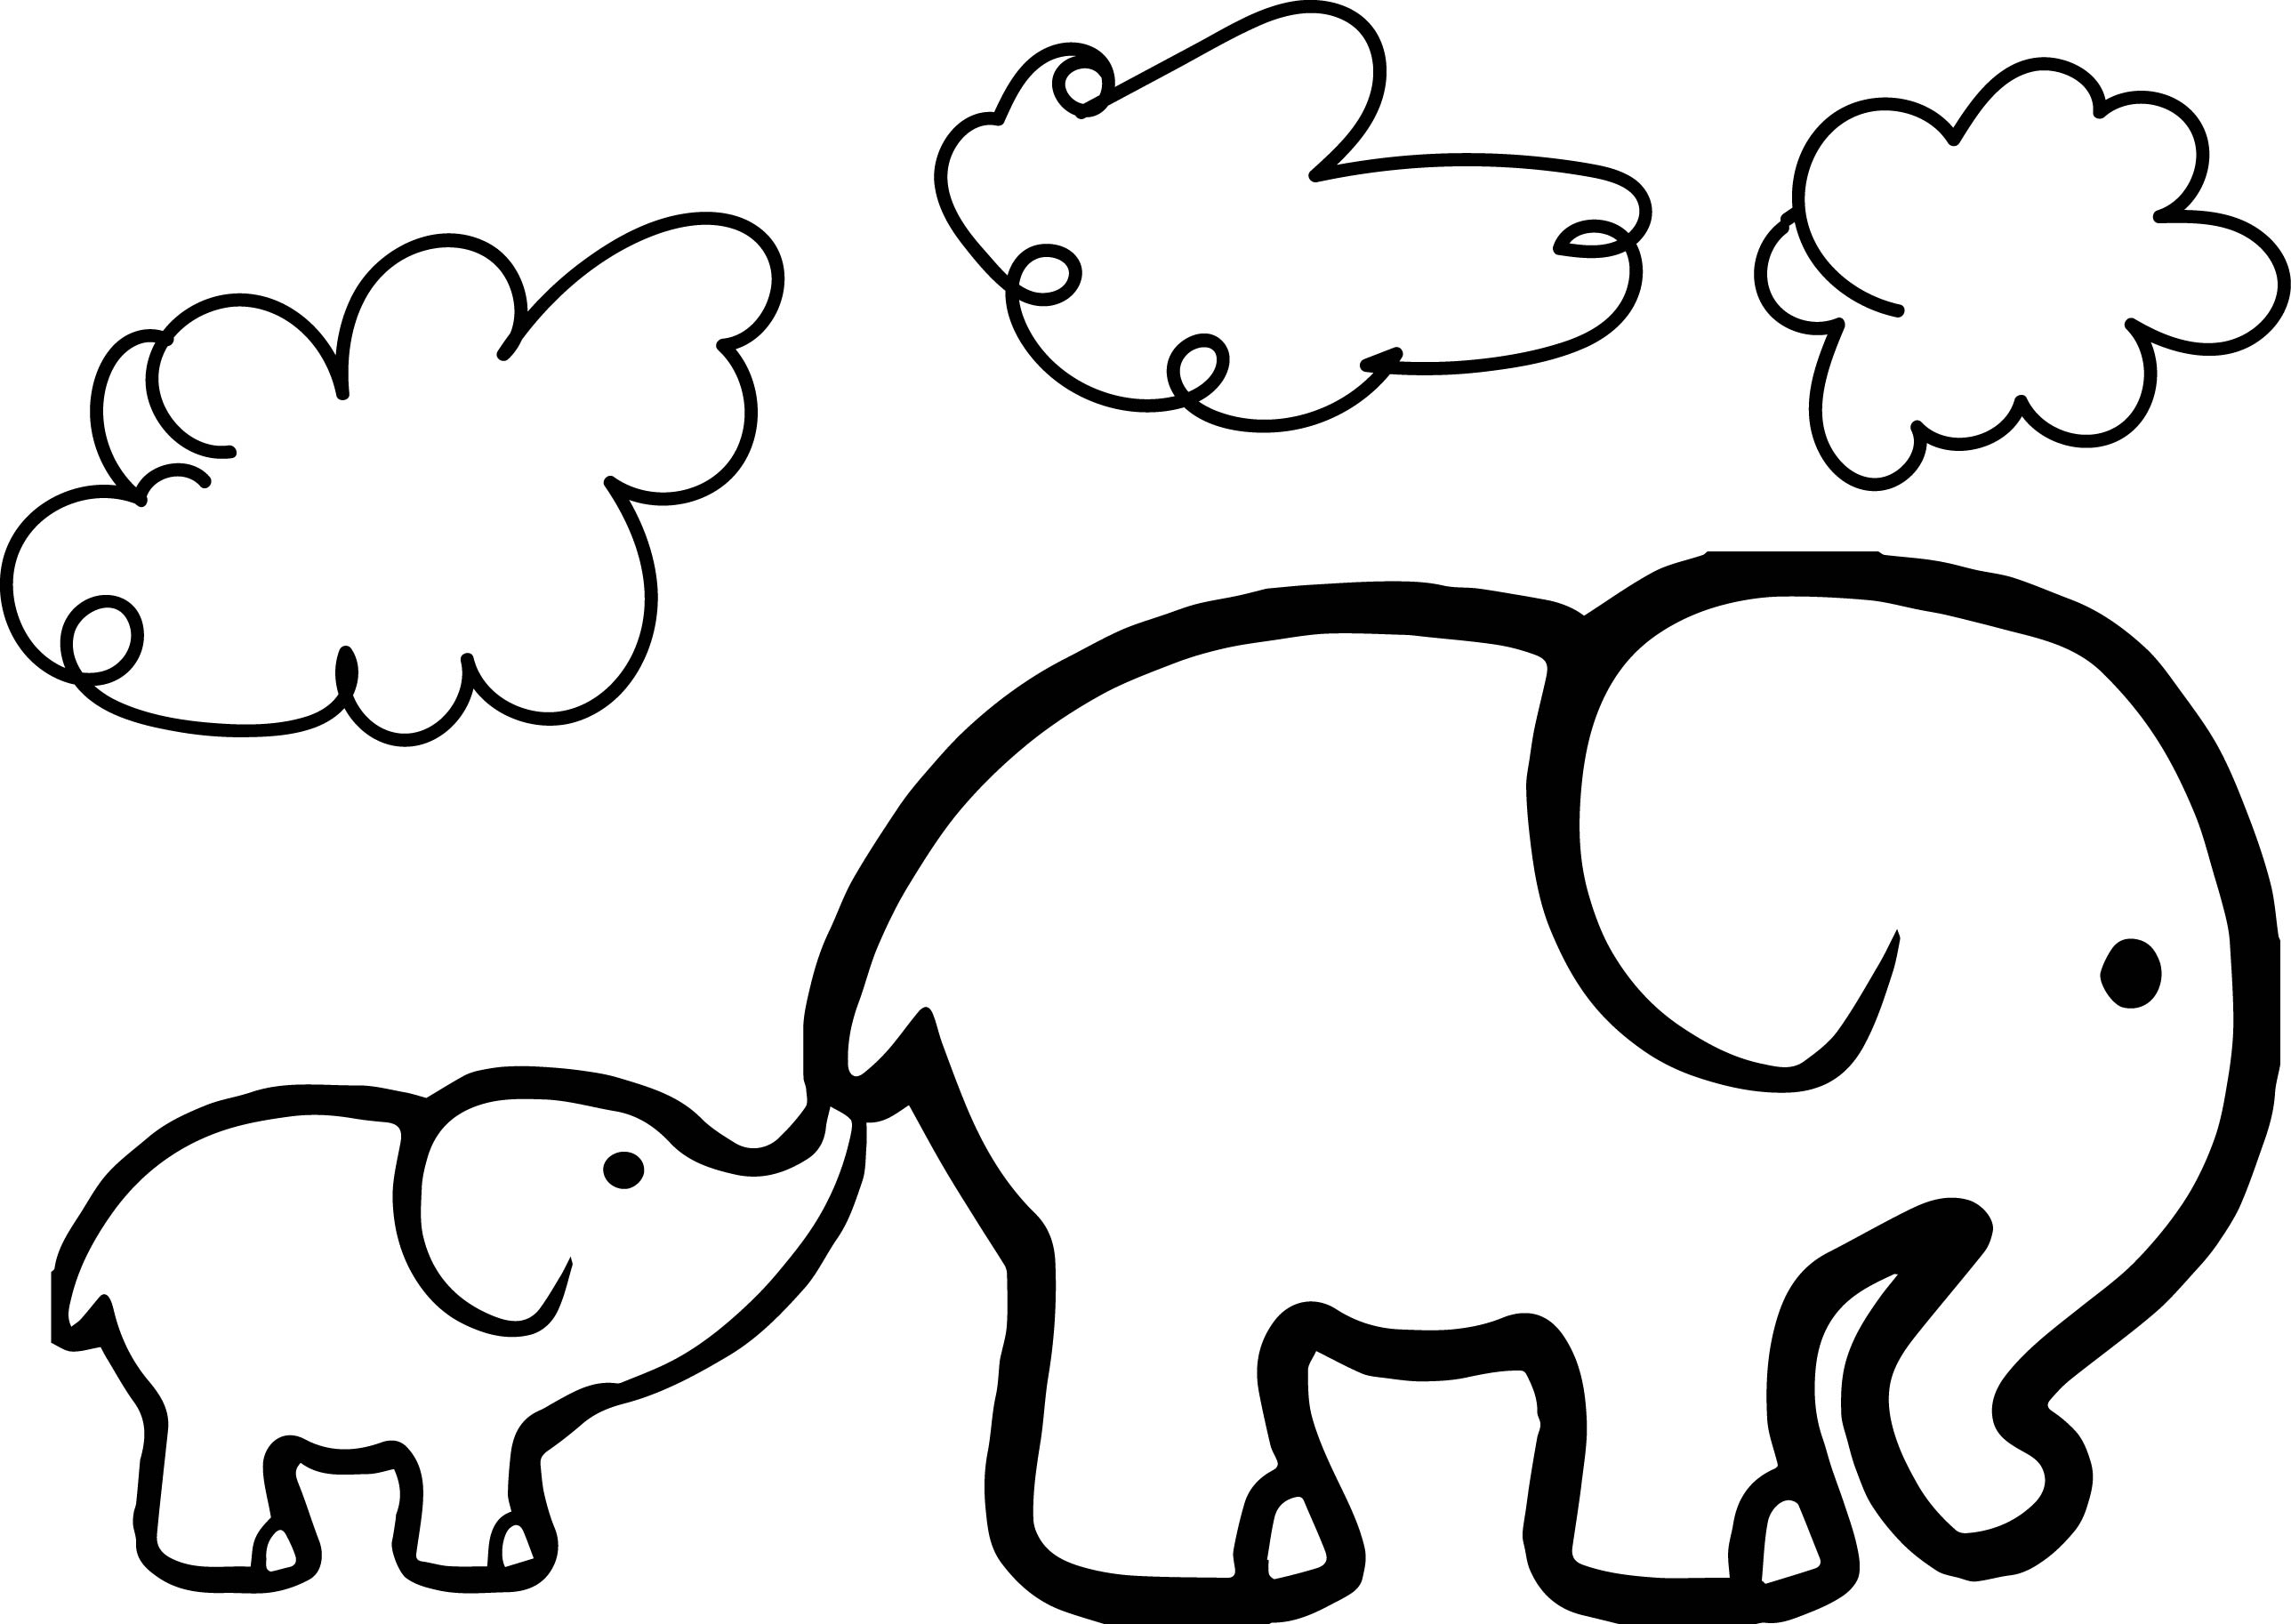 elephant coloring picture elephant coloring pages free download on clipartmag coloring elephant picture